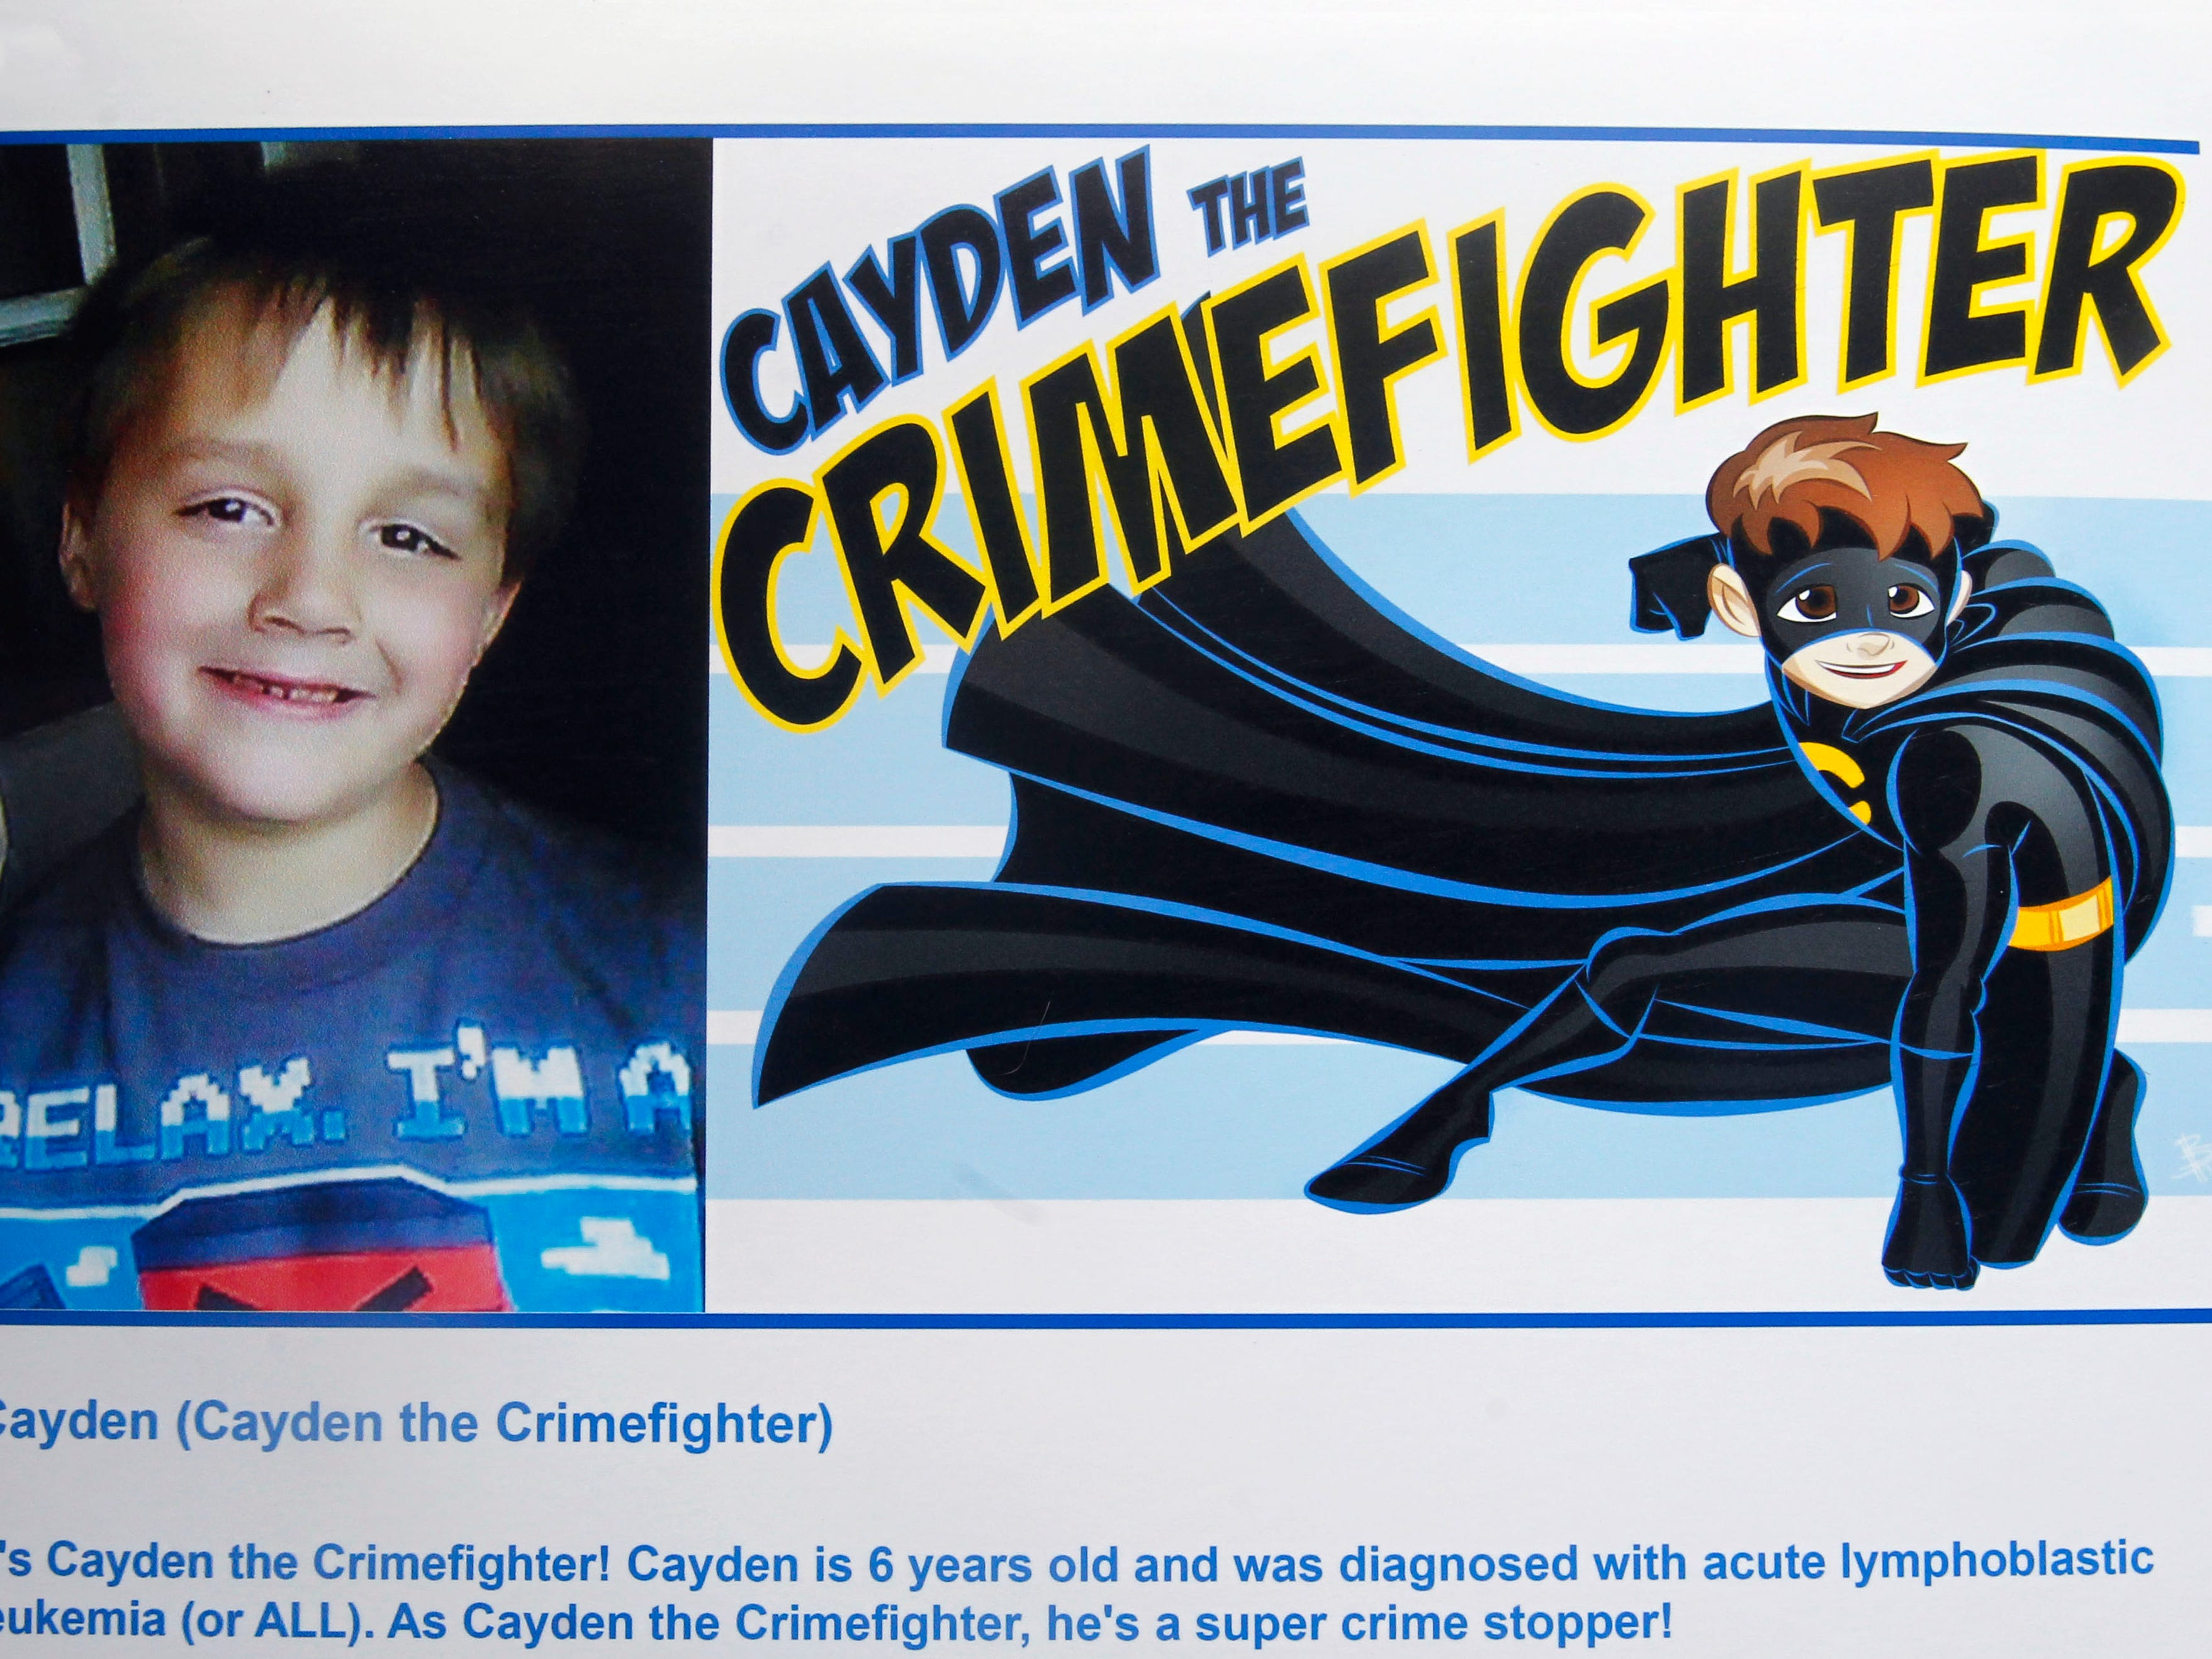 Cayden the Crimefighter is a superhero identity created by Bryan Dyer, owner of You Are the Hero.